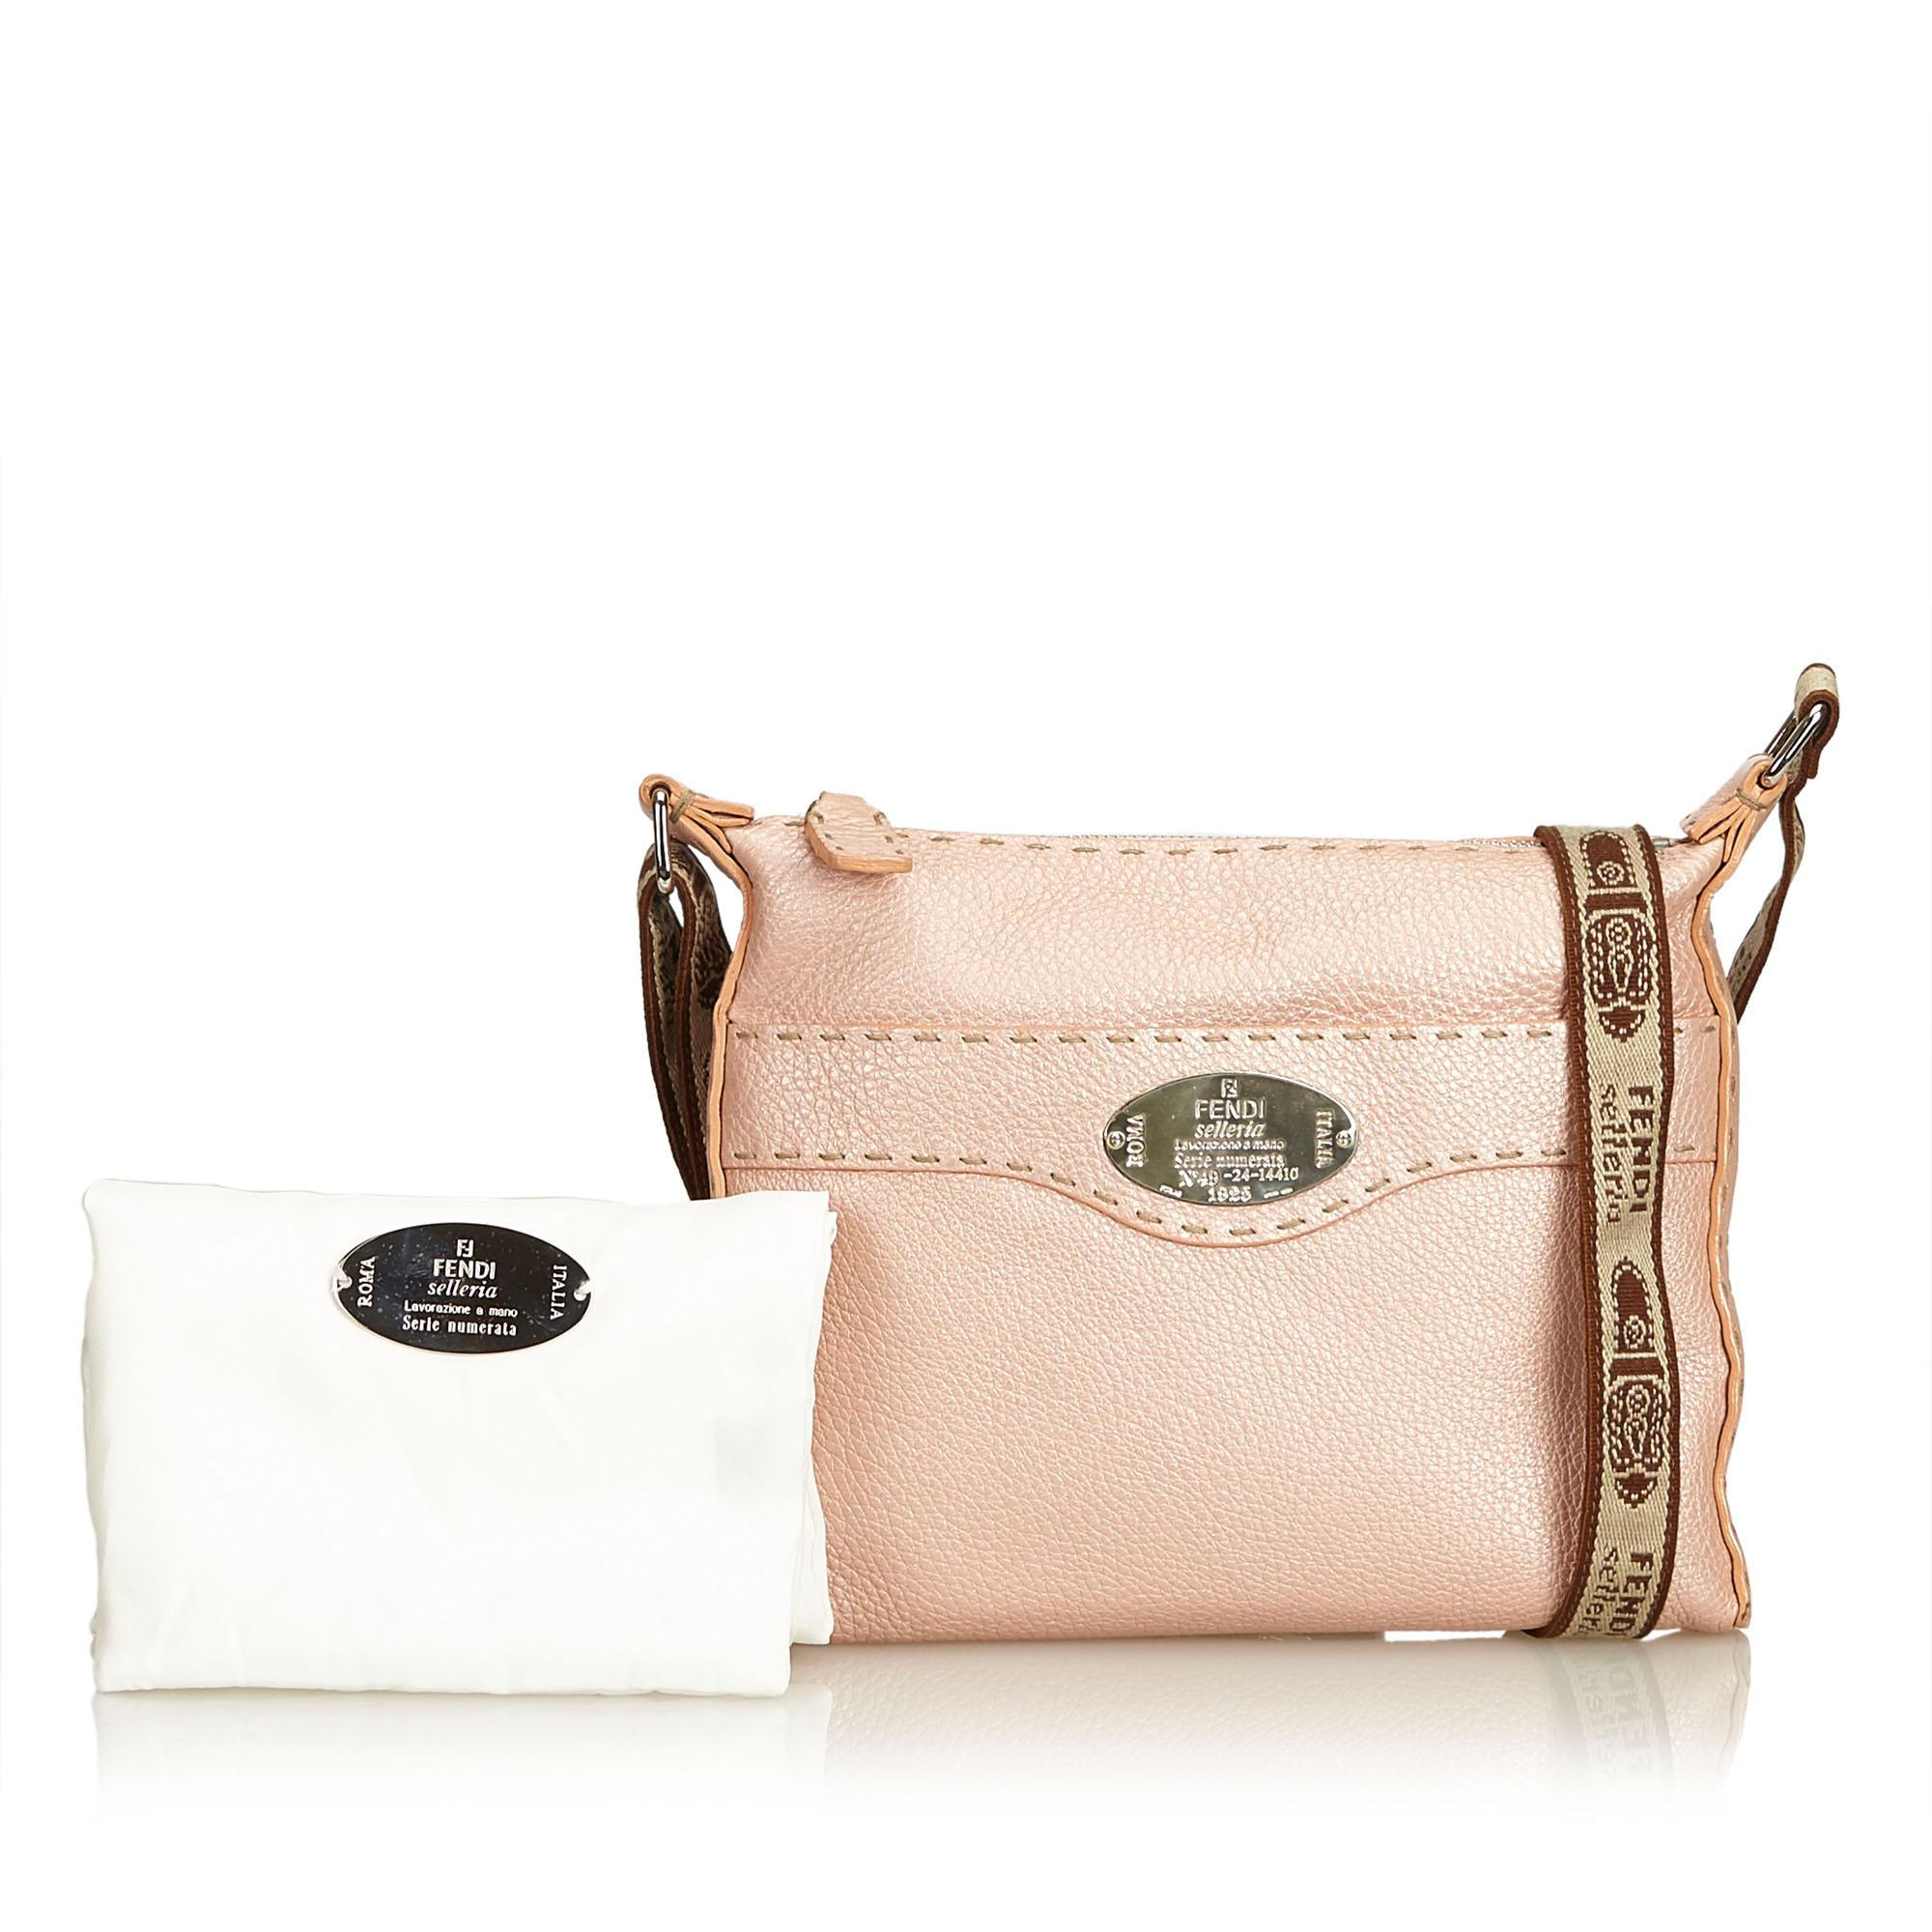 ffc625ce8406 Fendi Pink Leather Selleria Crossbody Bag at 1stdibs